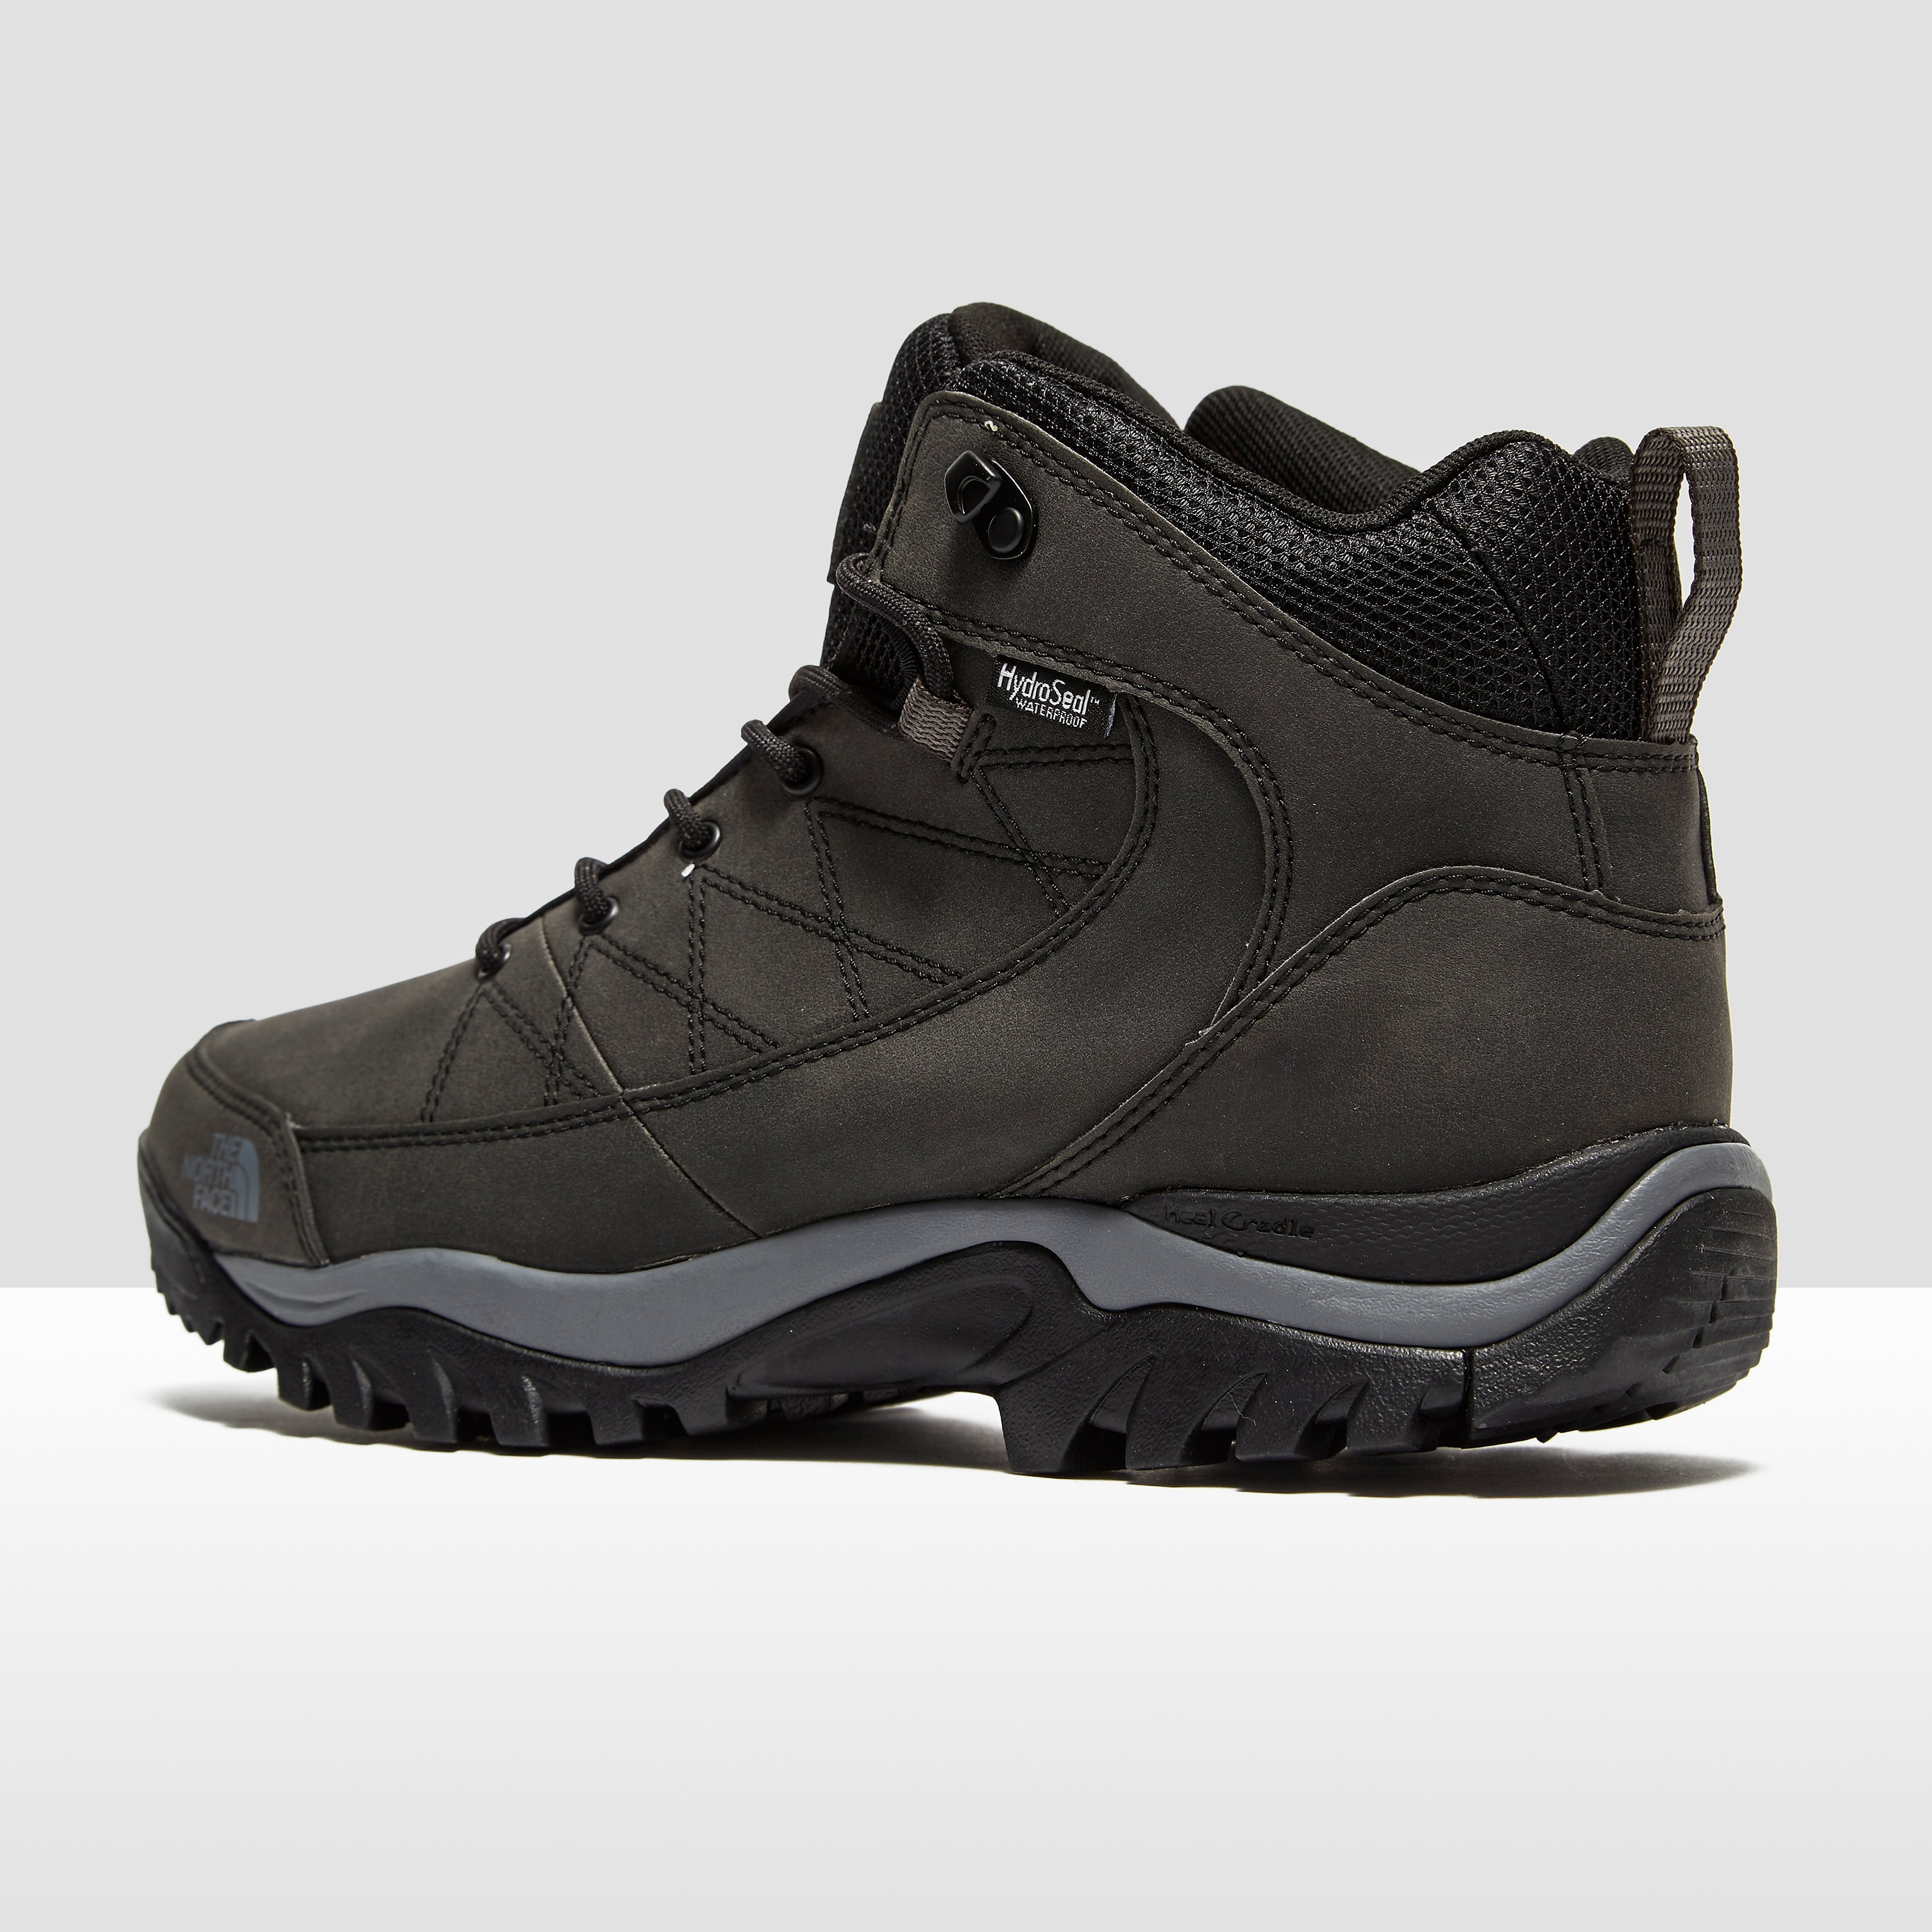 The North Face Storm Strike WP Insulated Men's Walking Boots